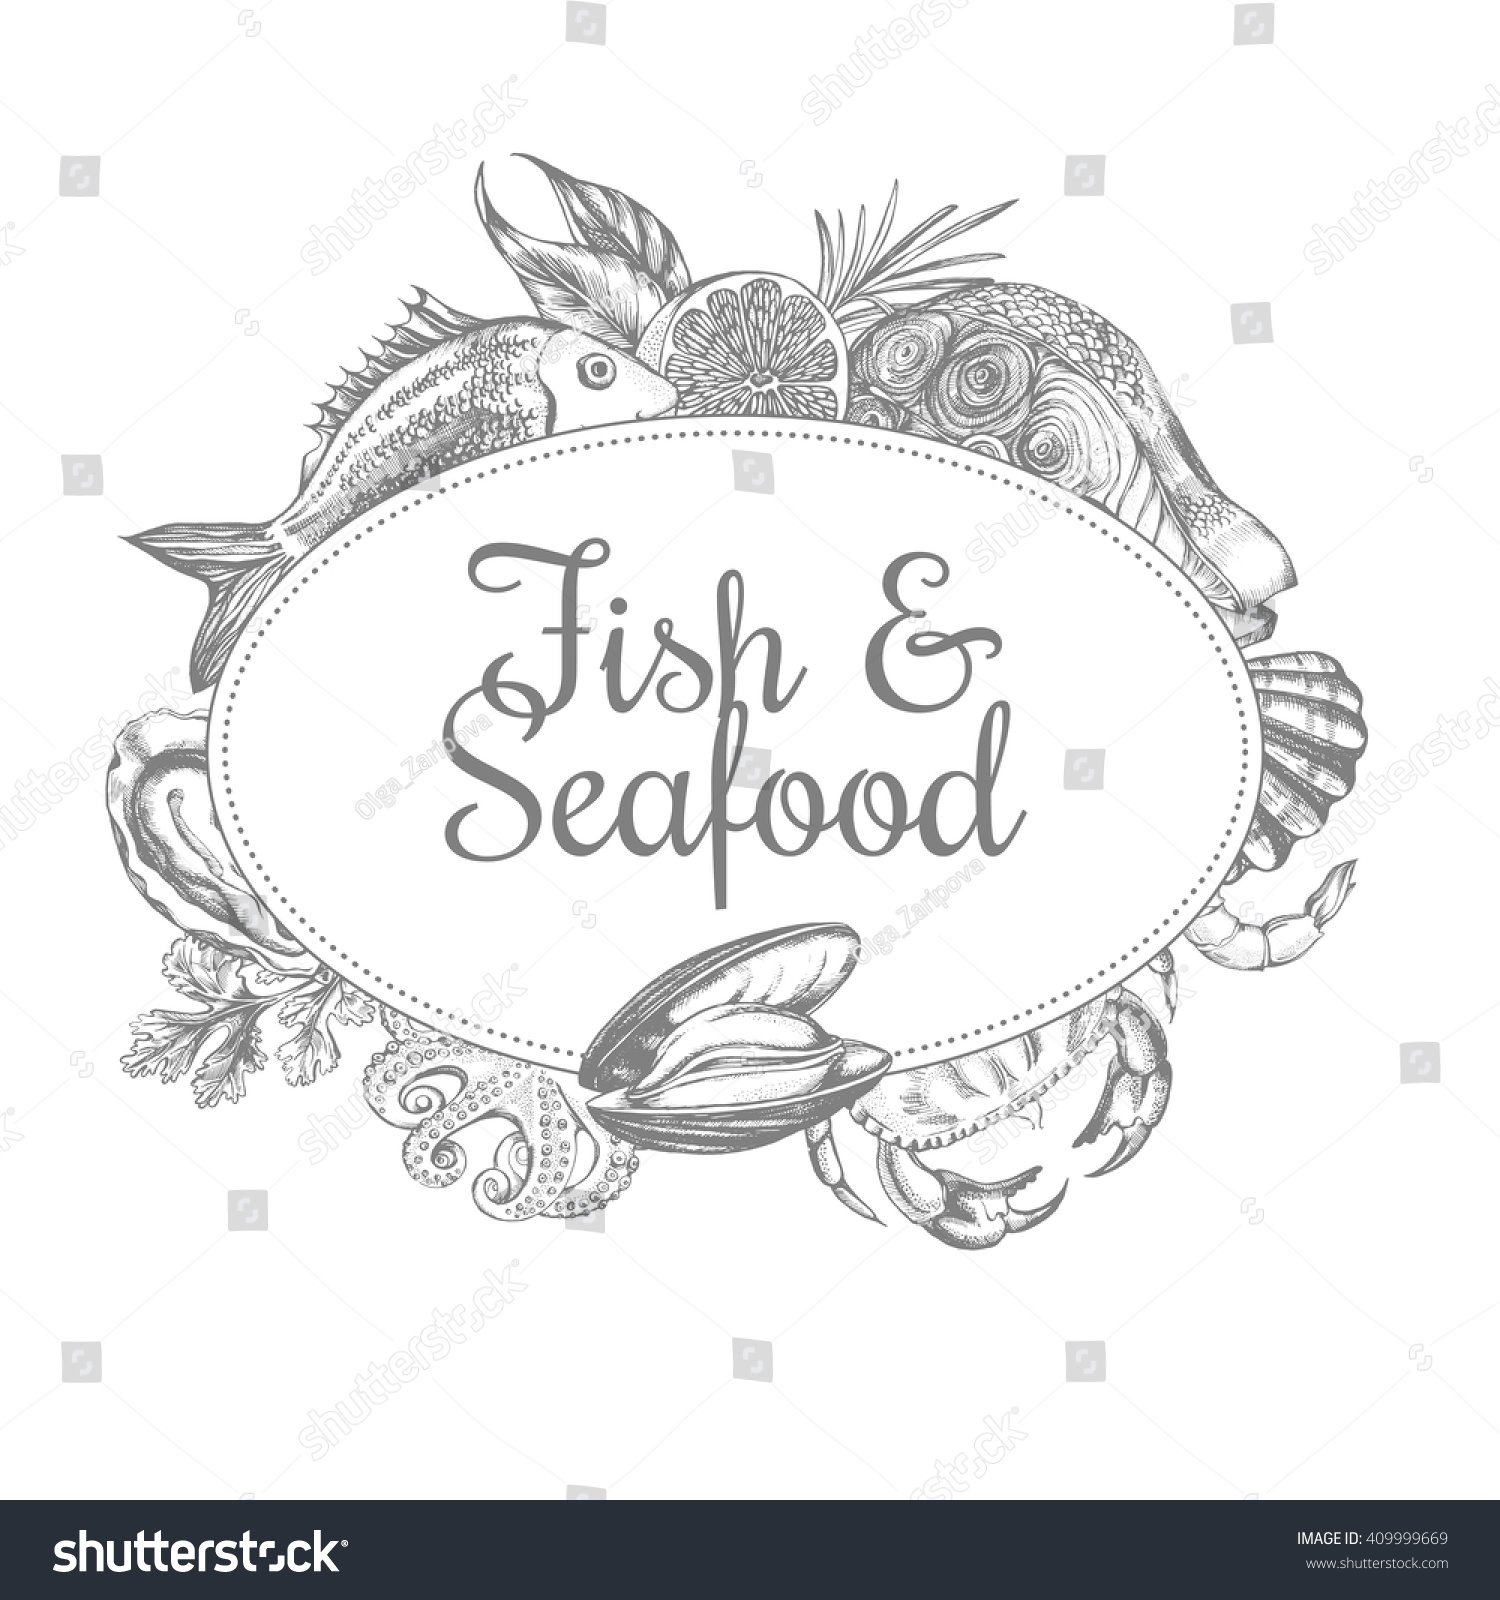 hight resolution of composition of fish and seafood the design concept for seafood shop or restaurant a